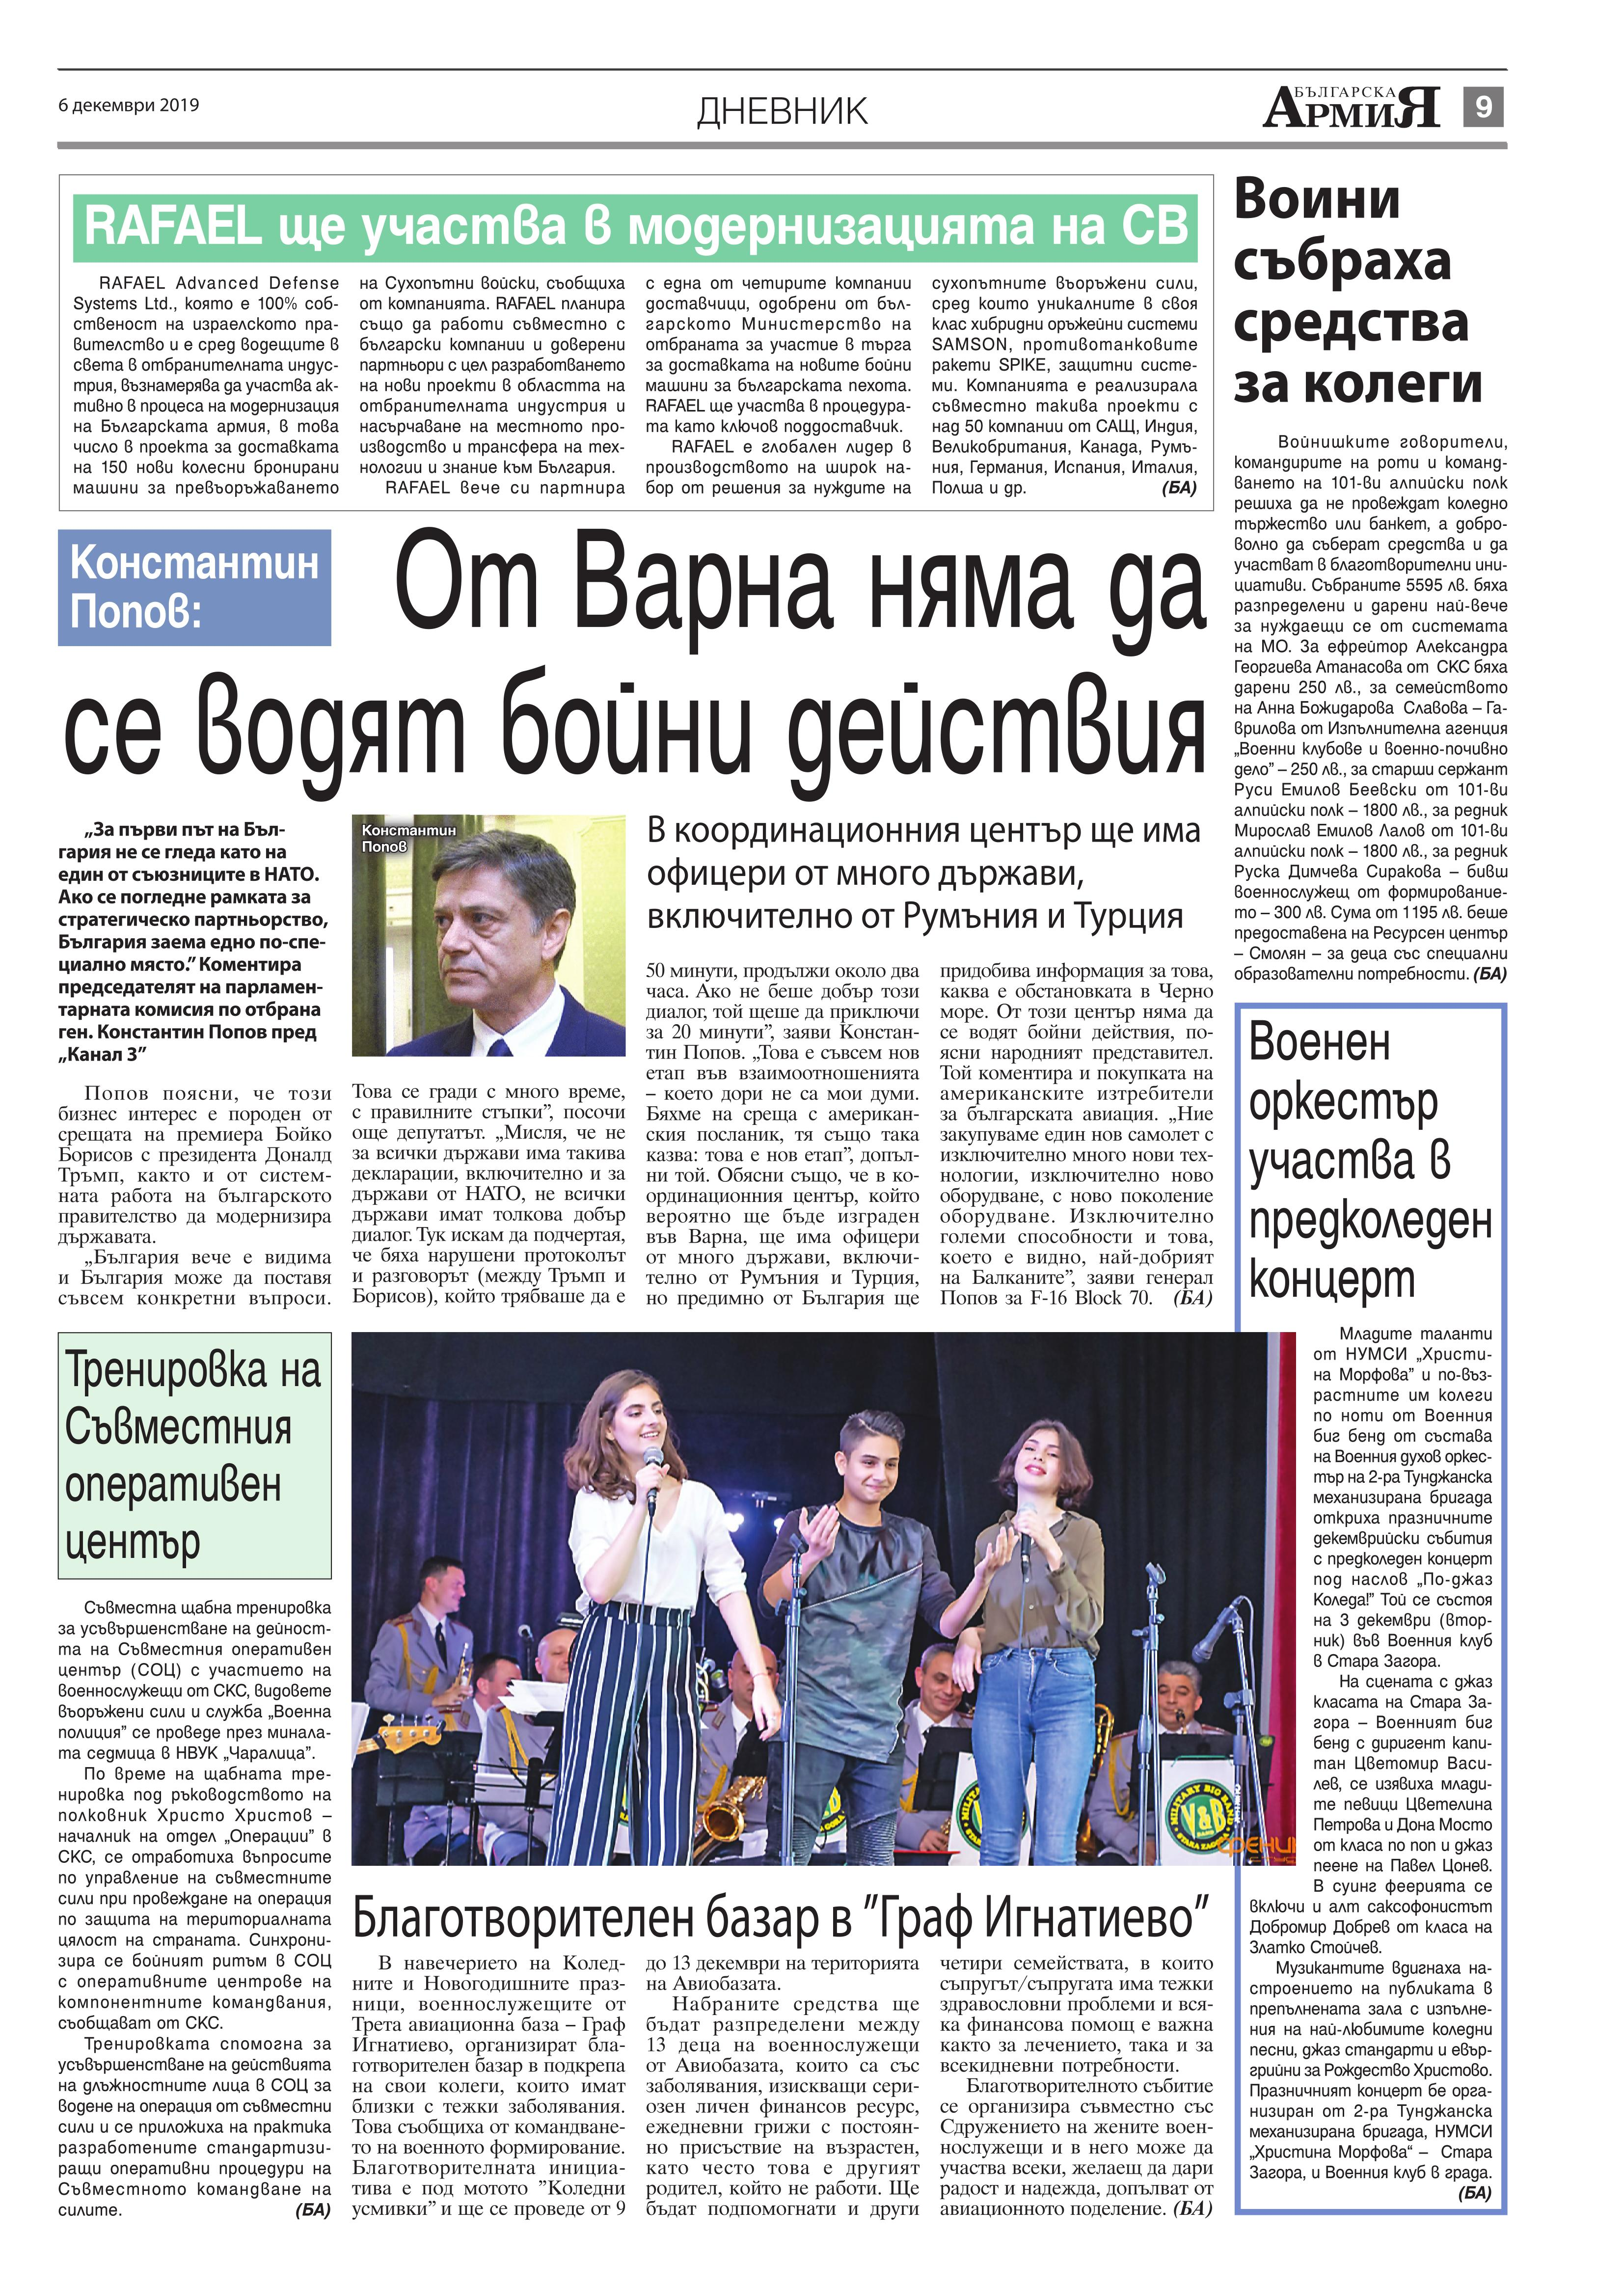 https://armymedia.bg/wp-content/uploads/2015/06/09.page1_-116.jpg